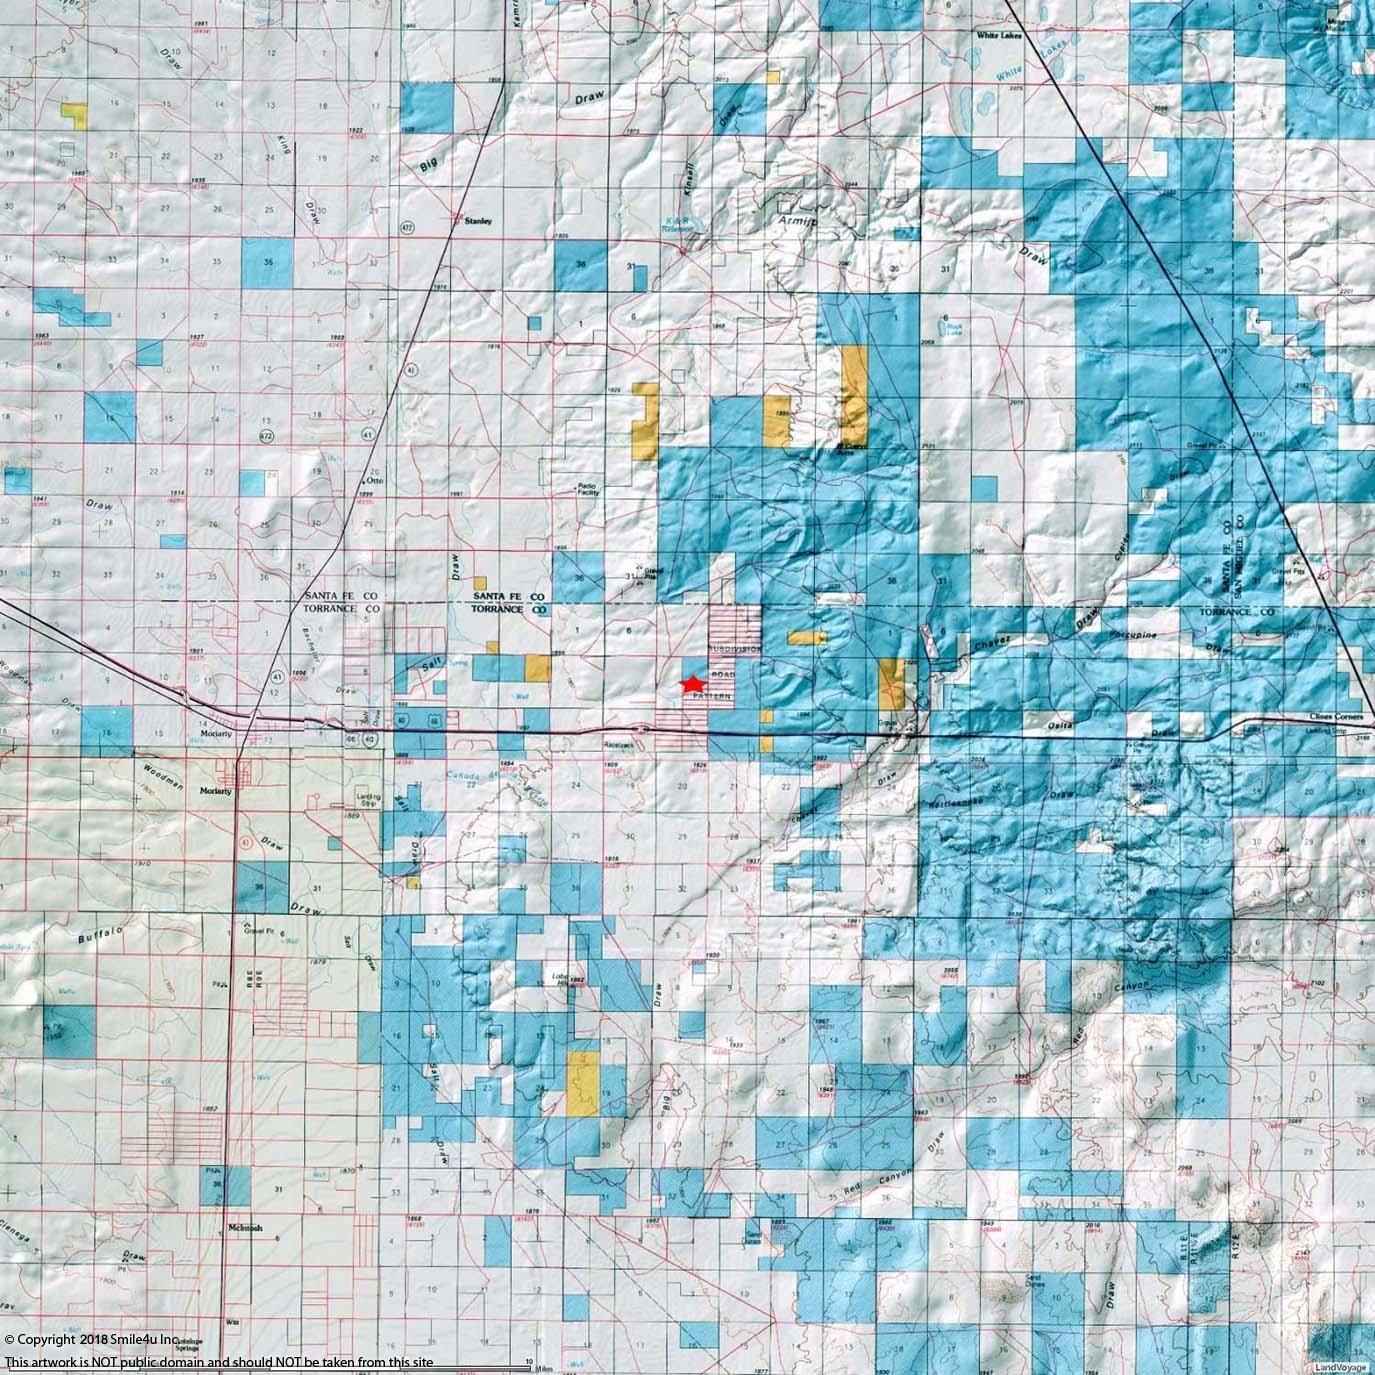 443506_watermarked_BLM map ER U12 B14 L12-13.jpg